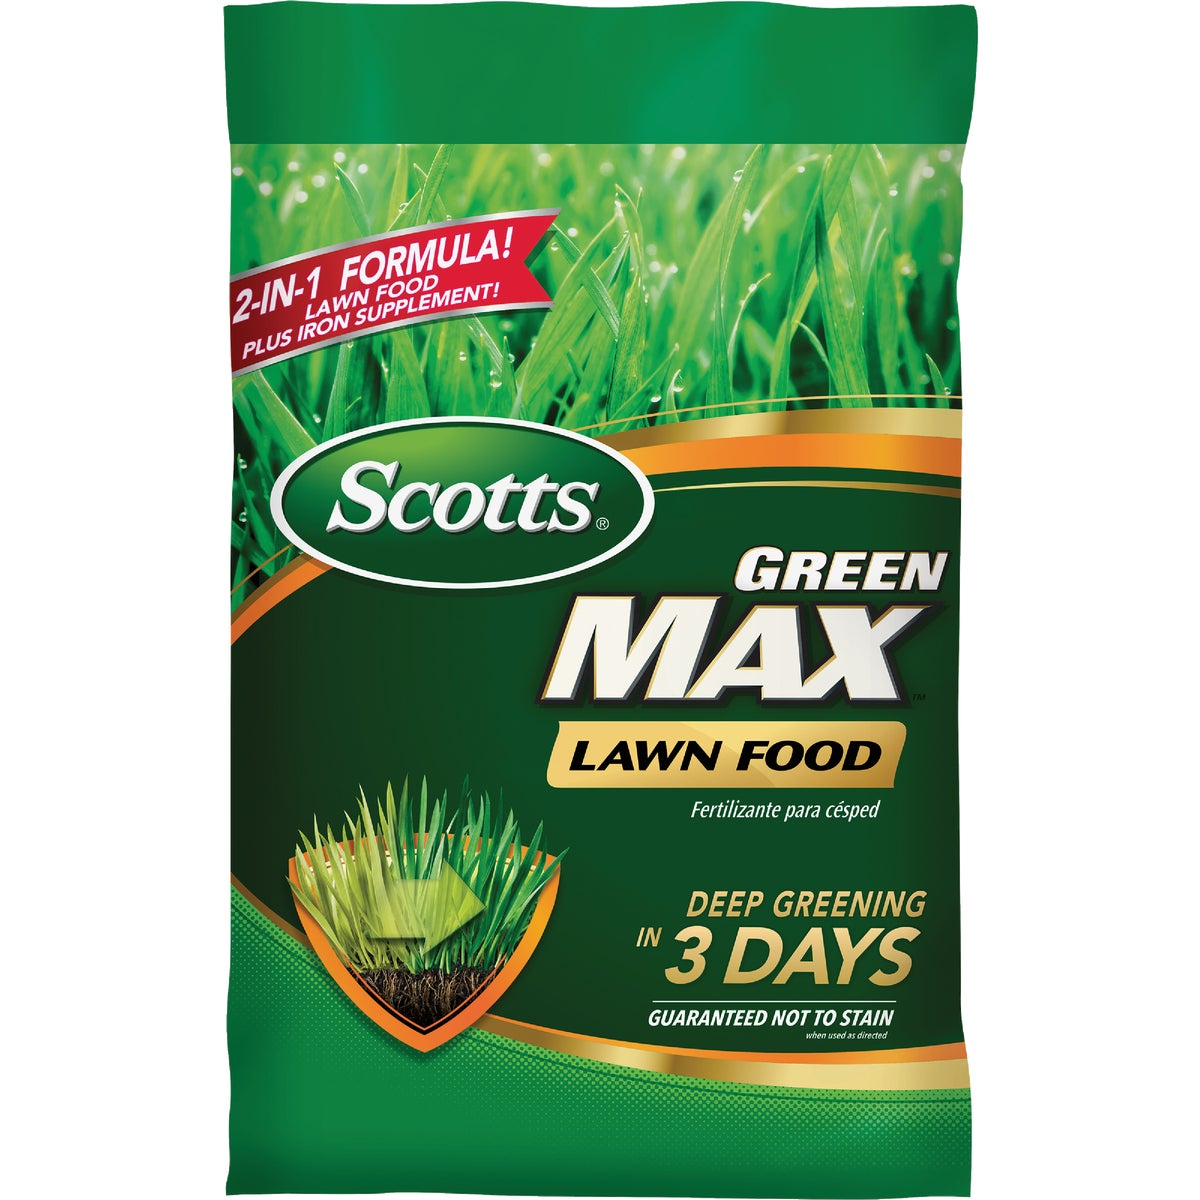 5M GREEN MAX LAWN FOOD - 44605B by Scotts Company